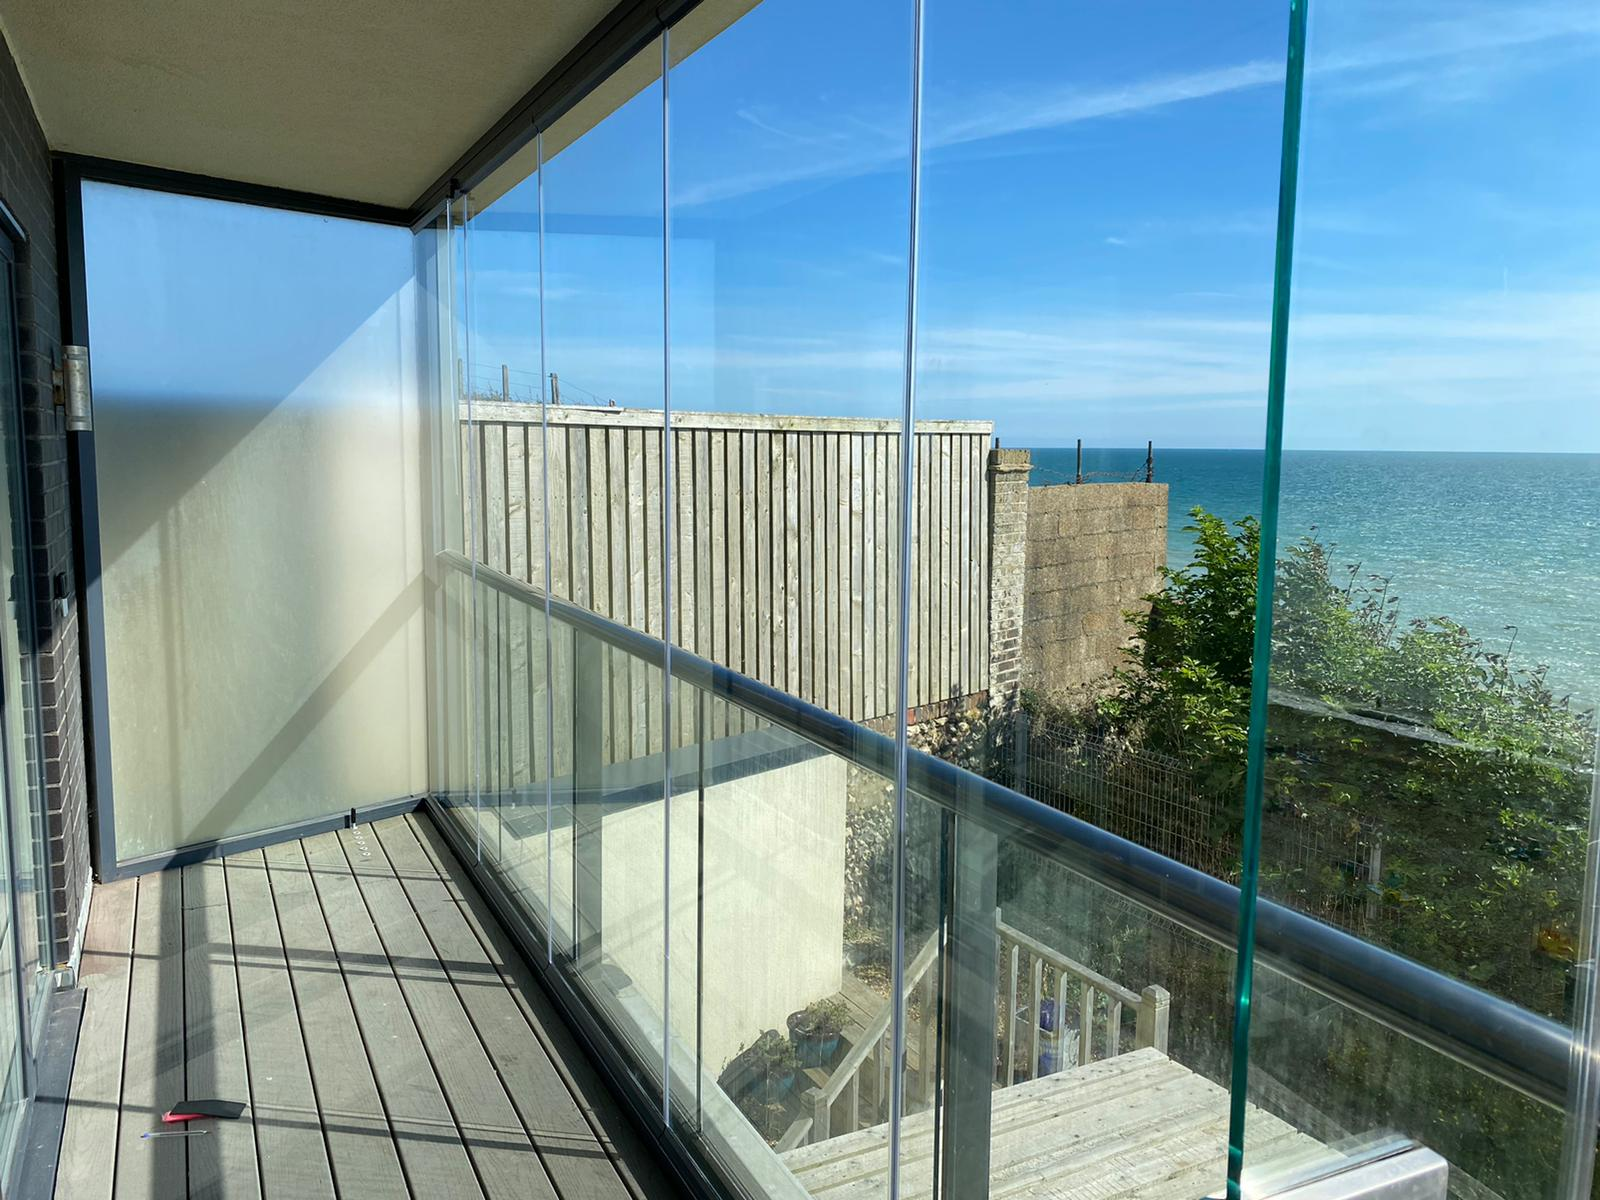 balcony enclosures for apartments in a brighton seafront property